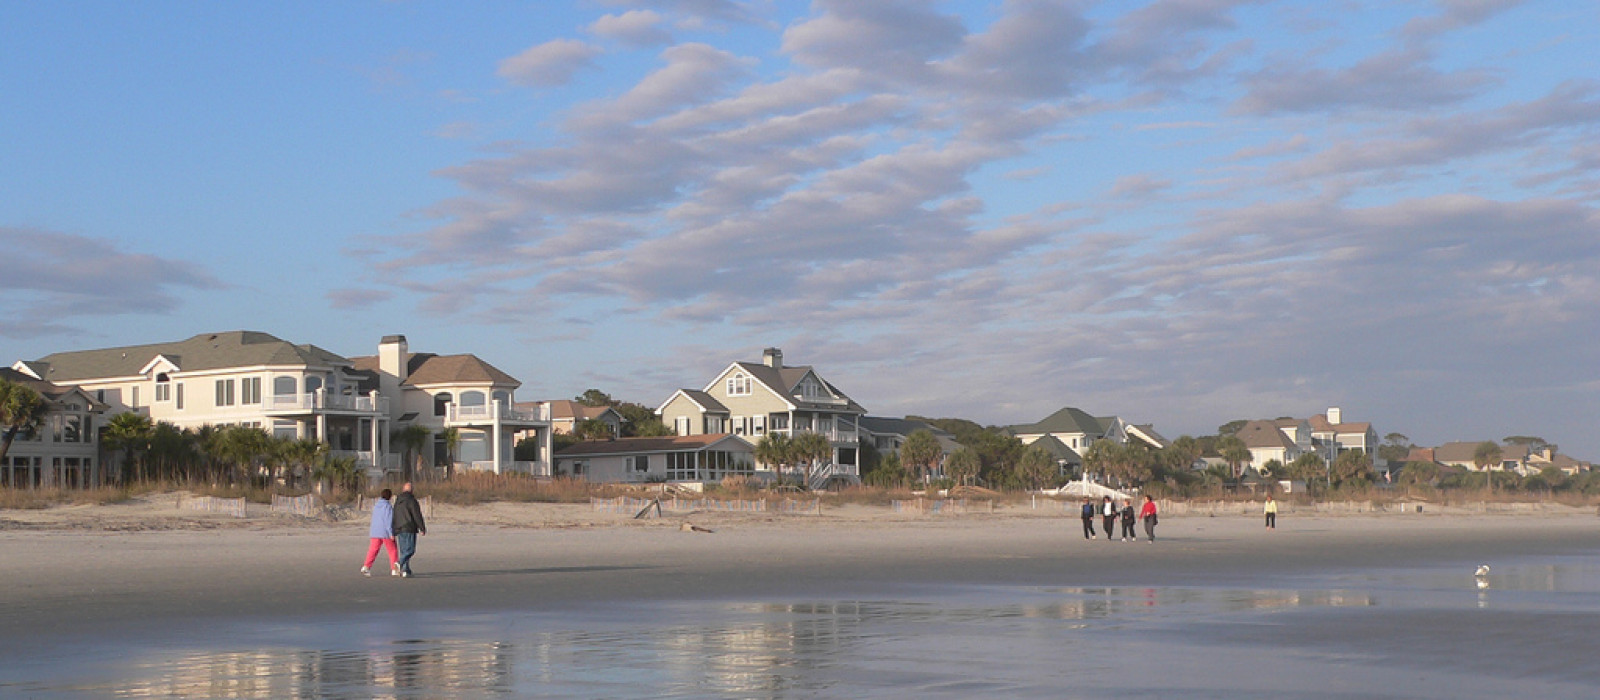 Beach house on Hilton Head Island